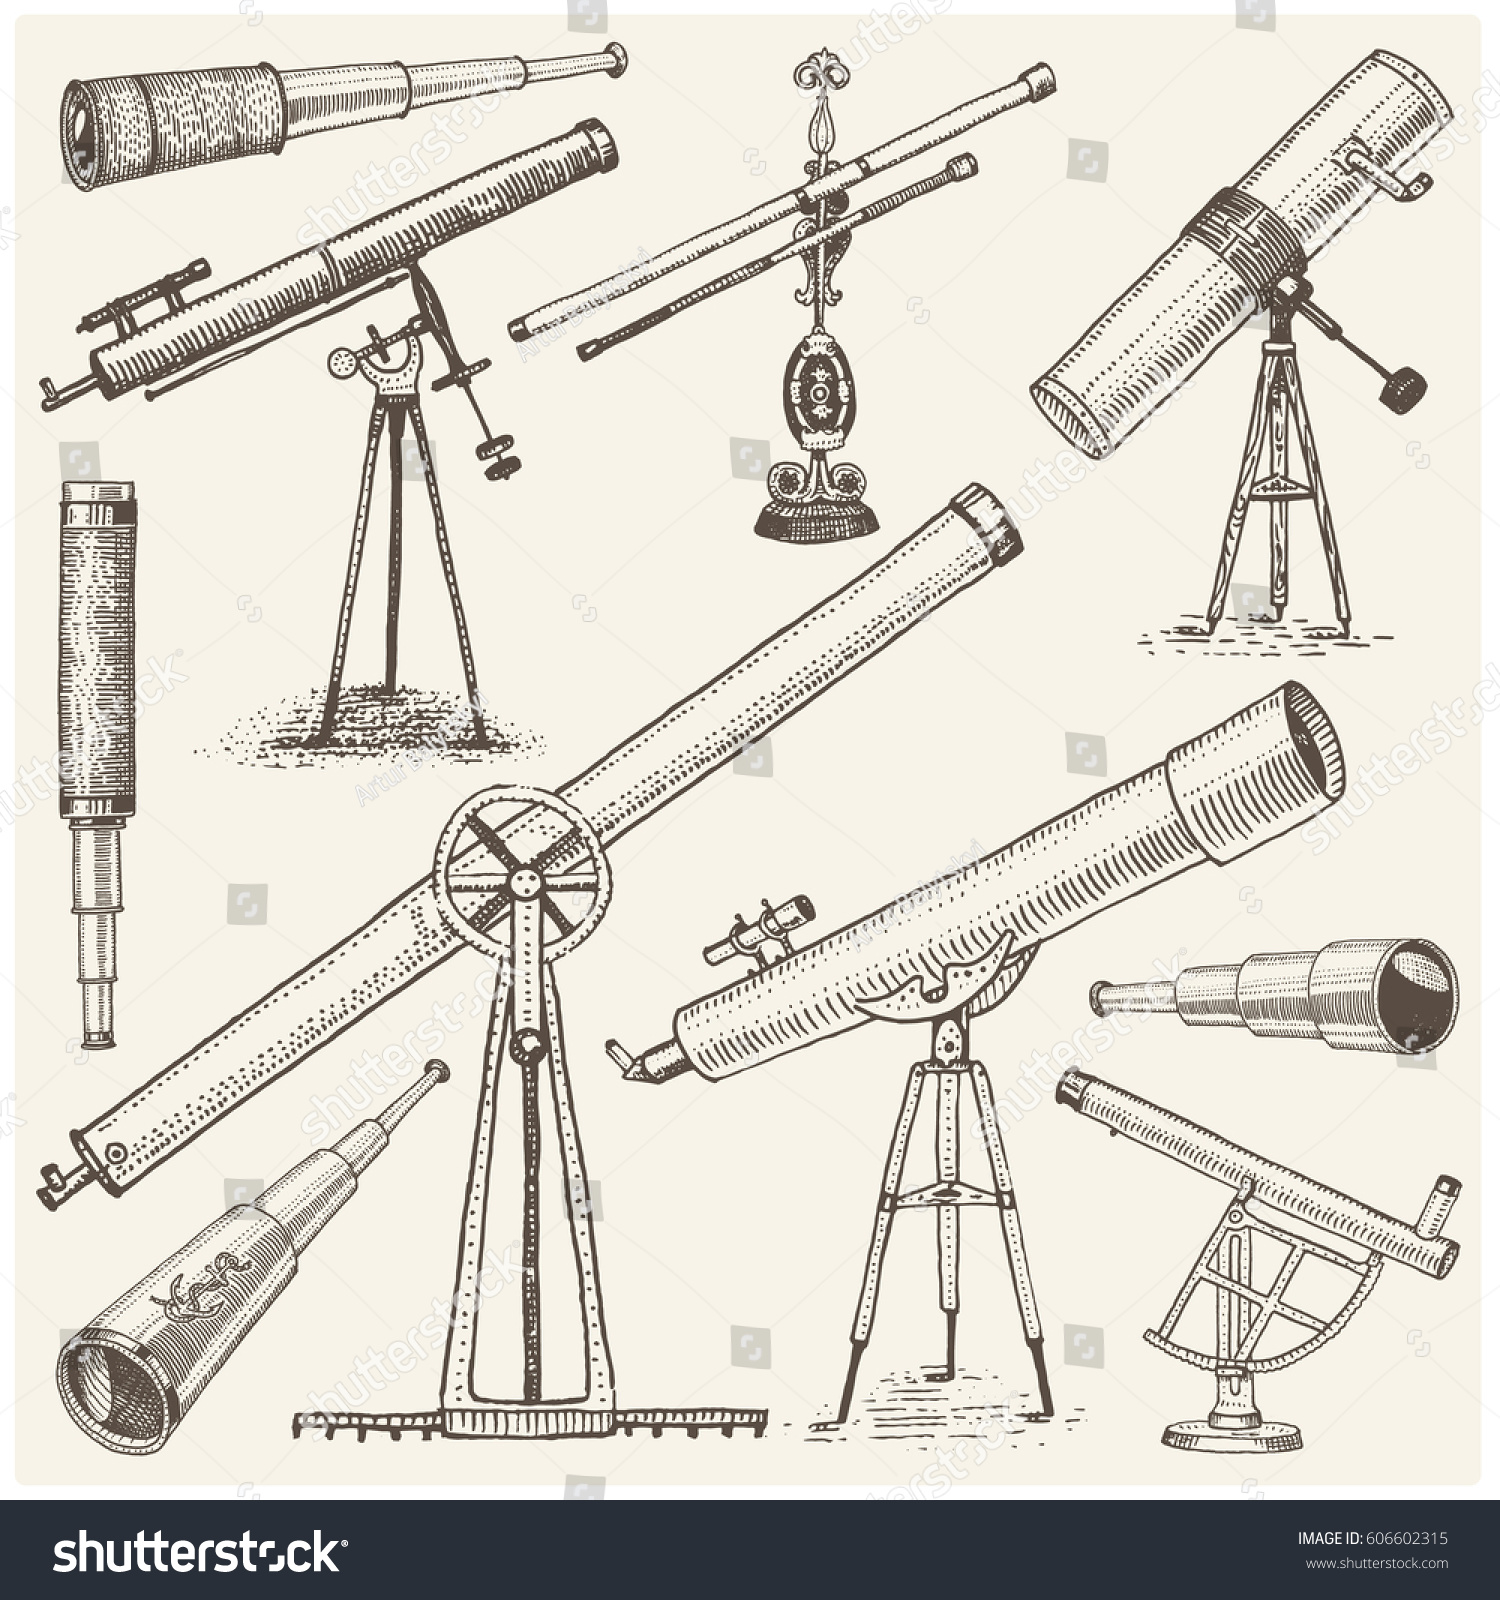 hight resolution of set of astronomical instruments telescopes oculars and binoculars quadrant sextant engraved in vintage